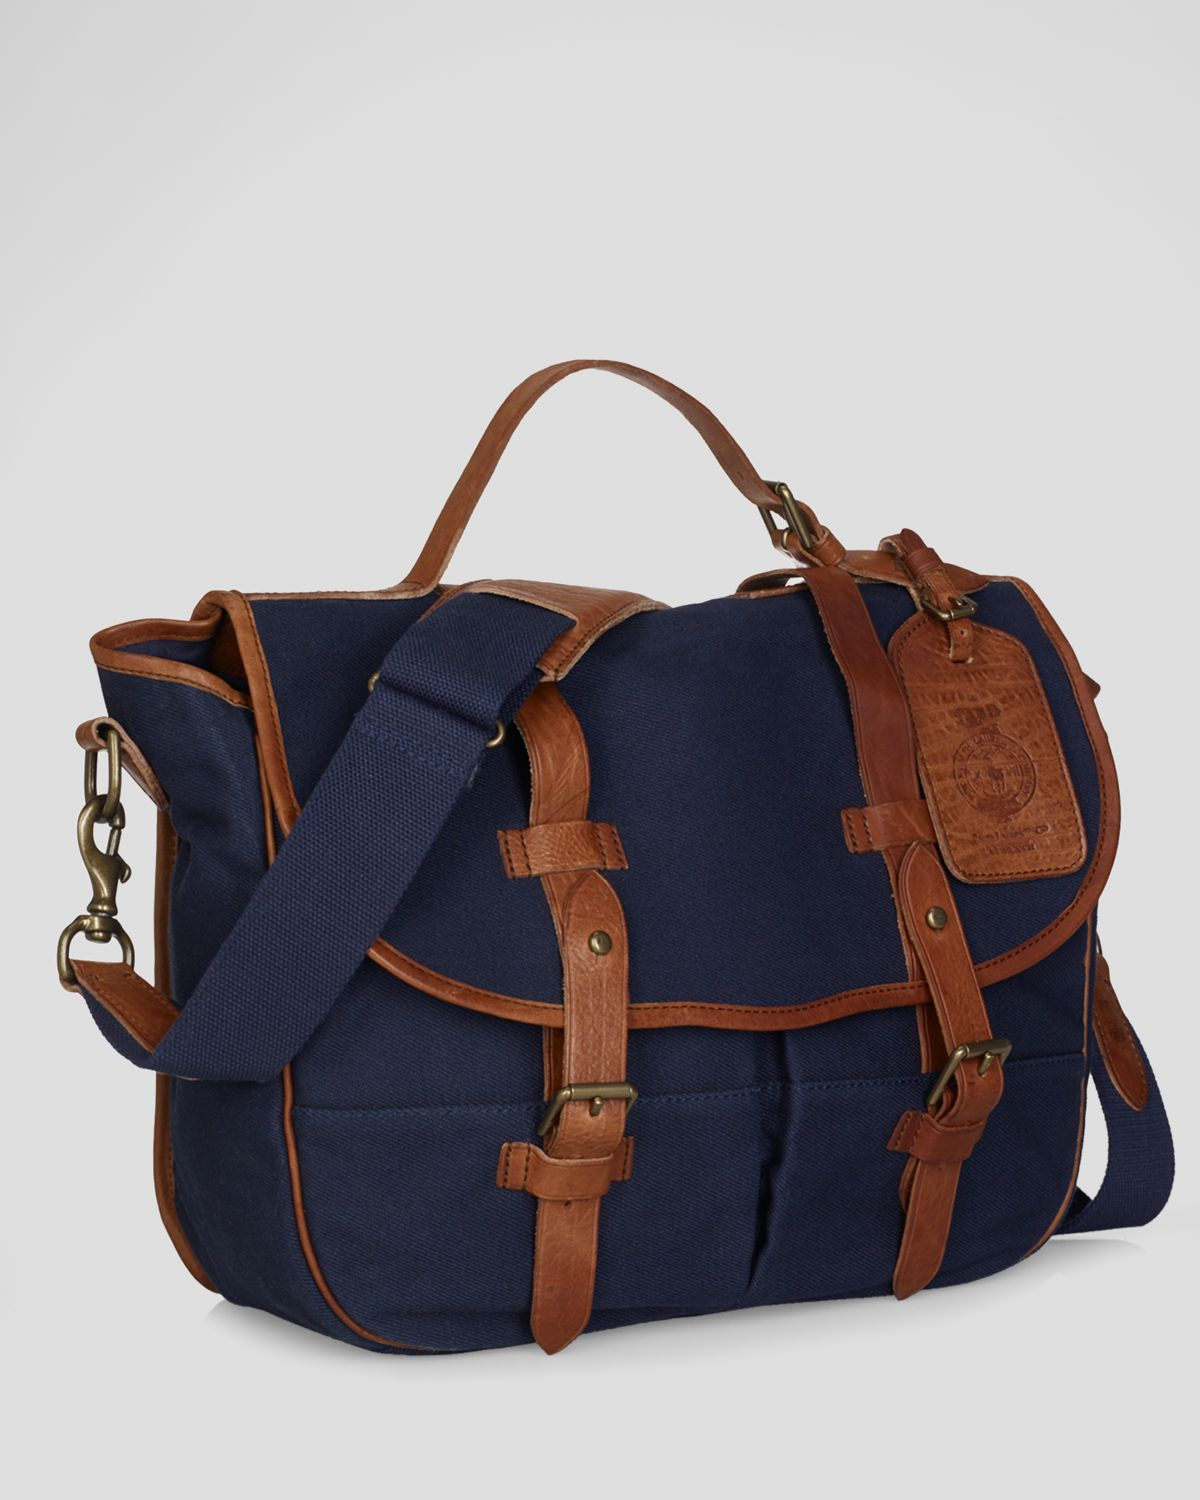 get lyst polo ralph lauren canvas messenger bag in blue for men 4932c a4f20 bc50cfdcf18f2